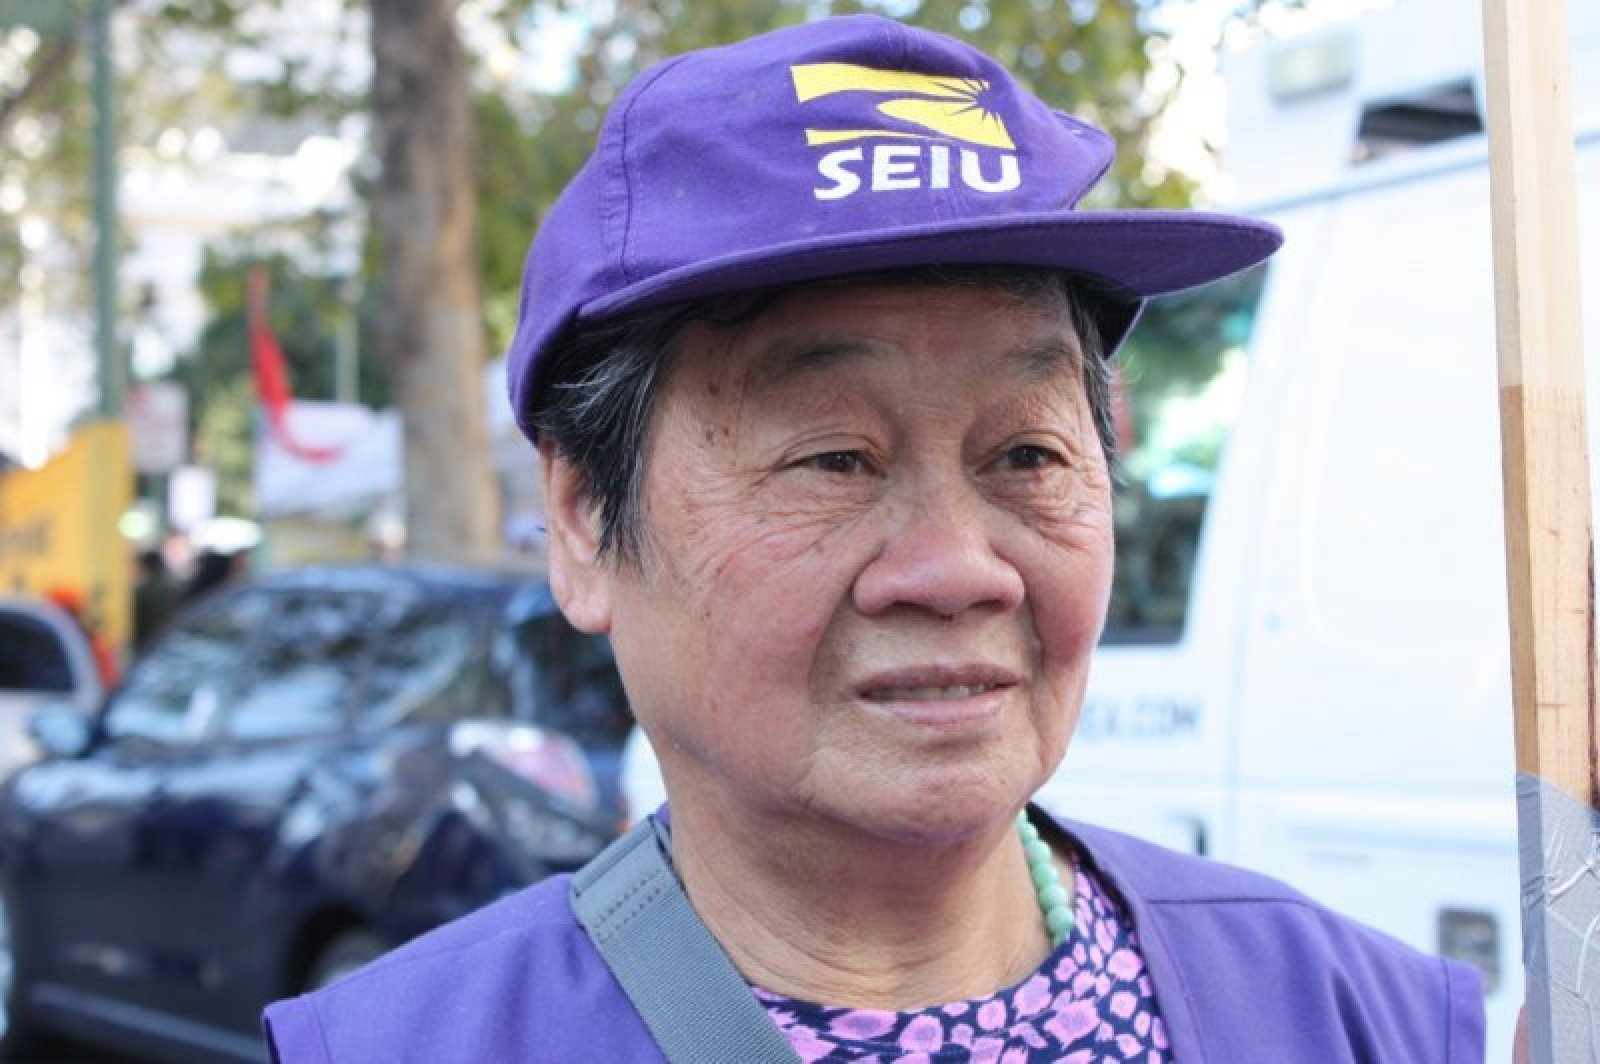 Xin Fong Huang, 74, participated in the general strike to support working conditions for home care workers. Photo: Rosa Ramirez